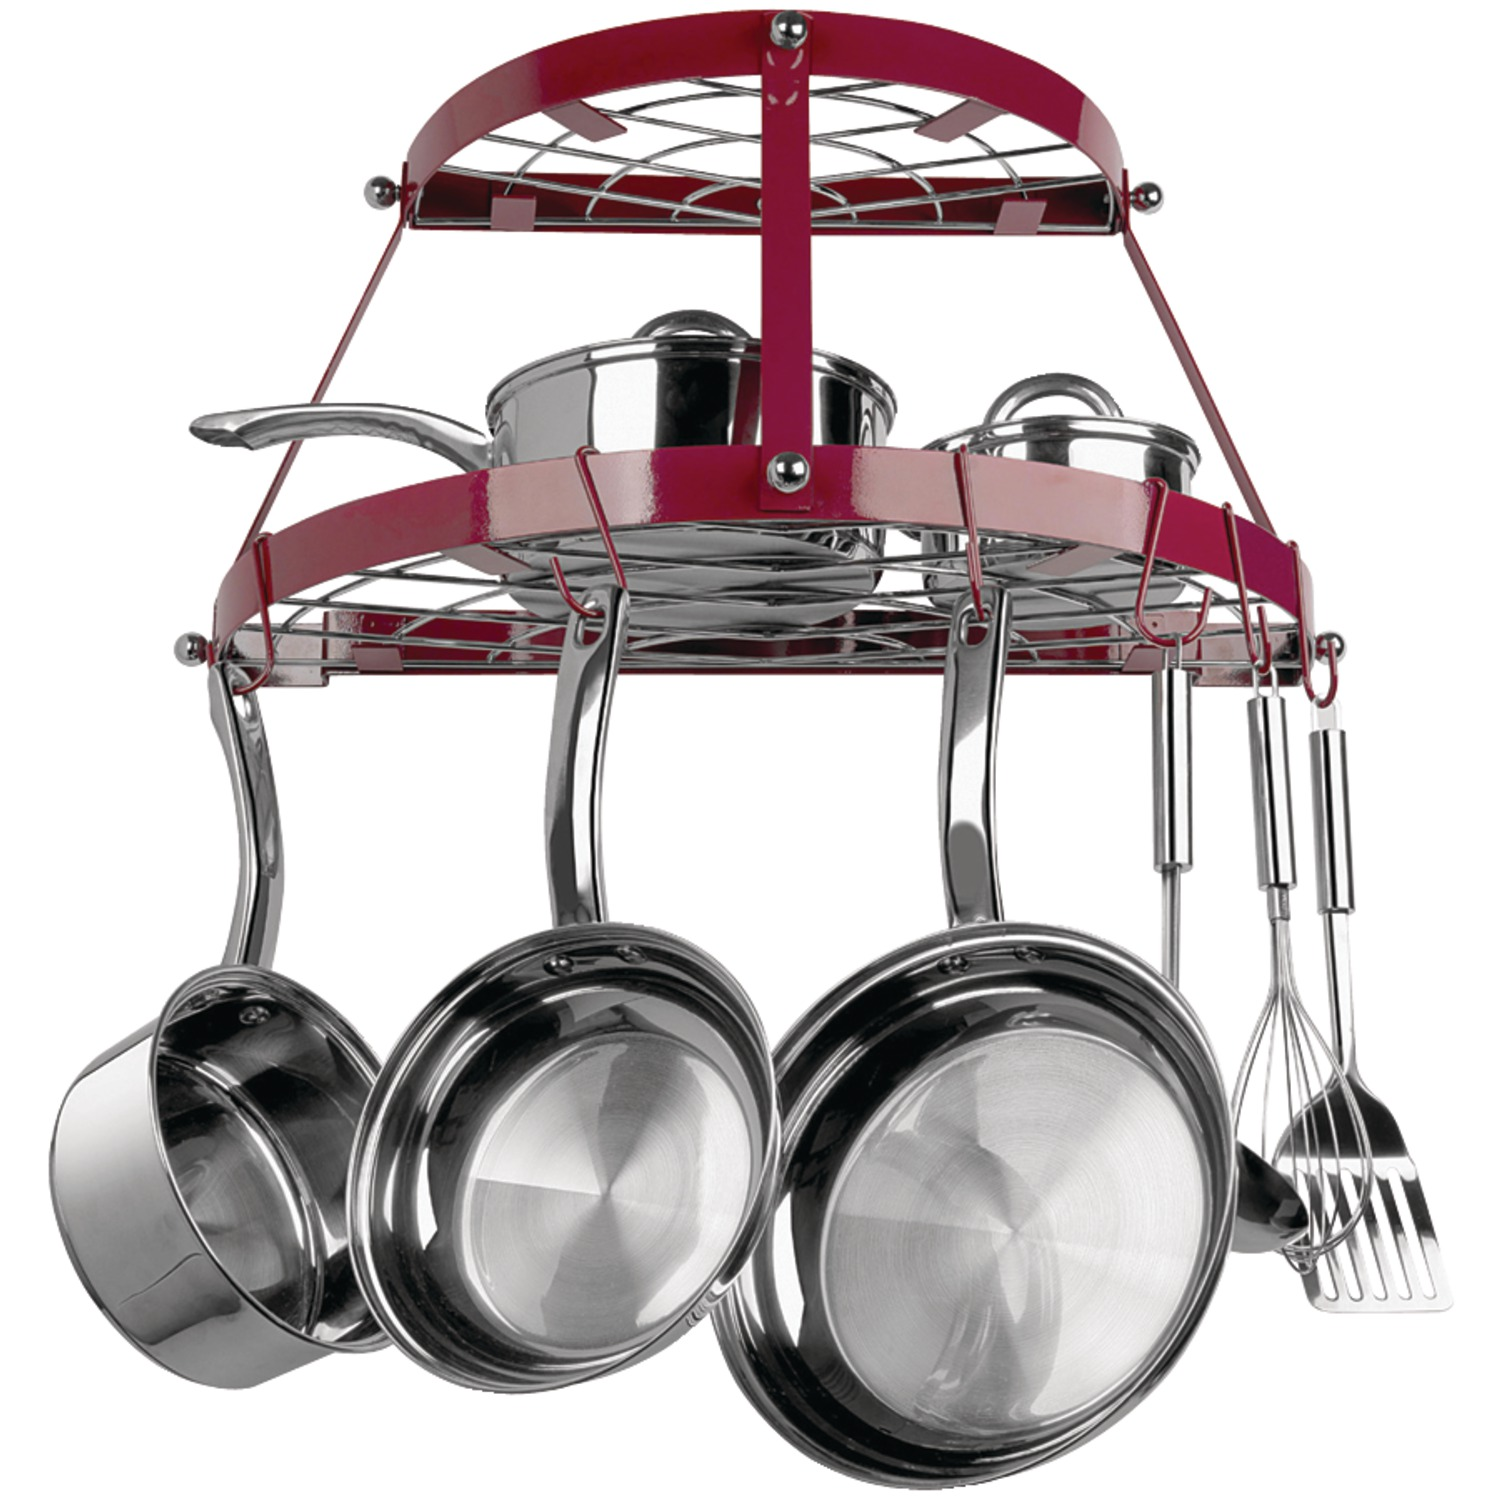 Range Kleen CW6003R Double-shelf Wall-mount Pot Rack (red)